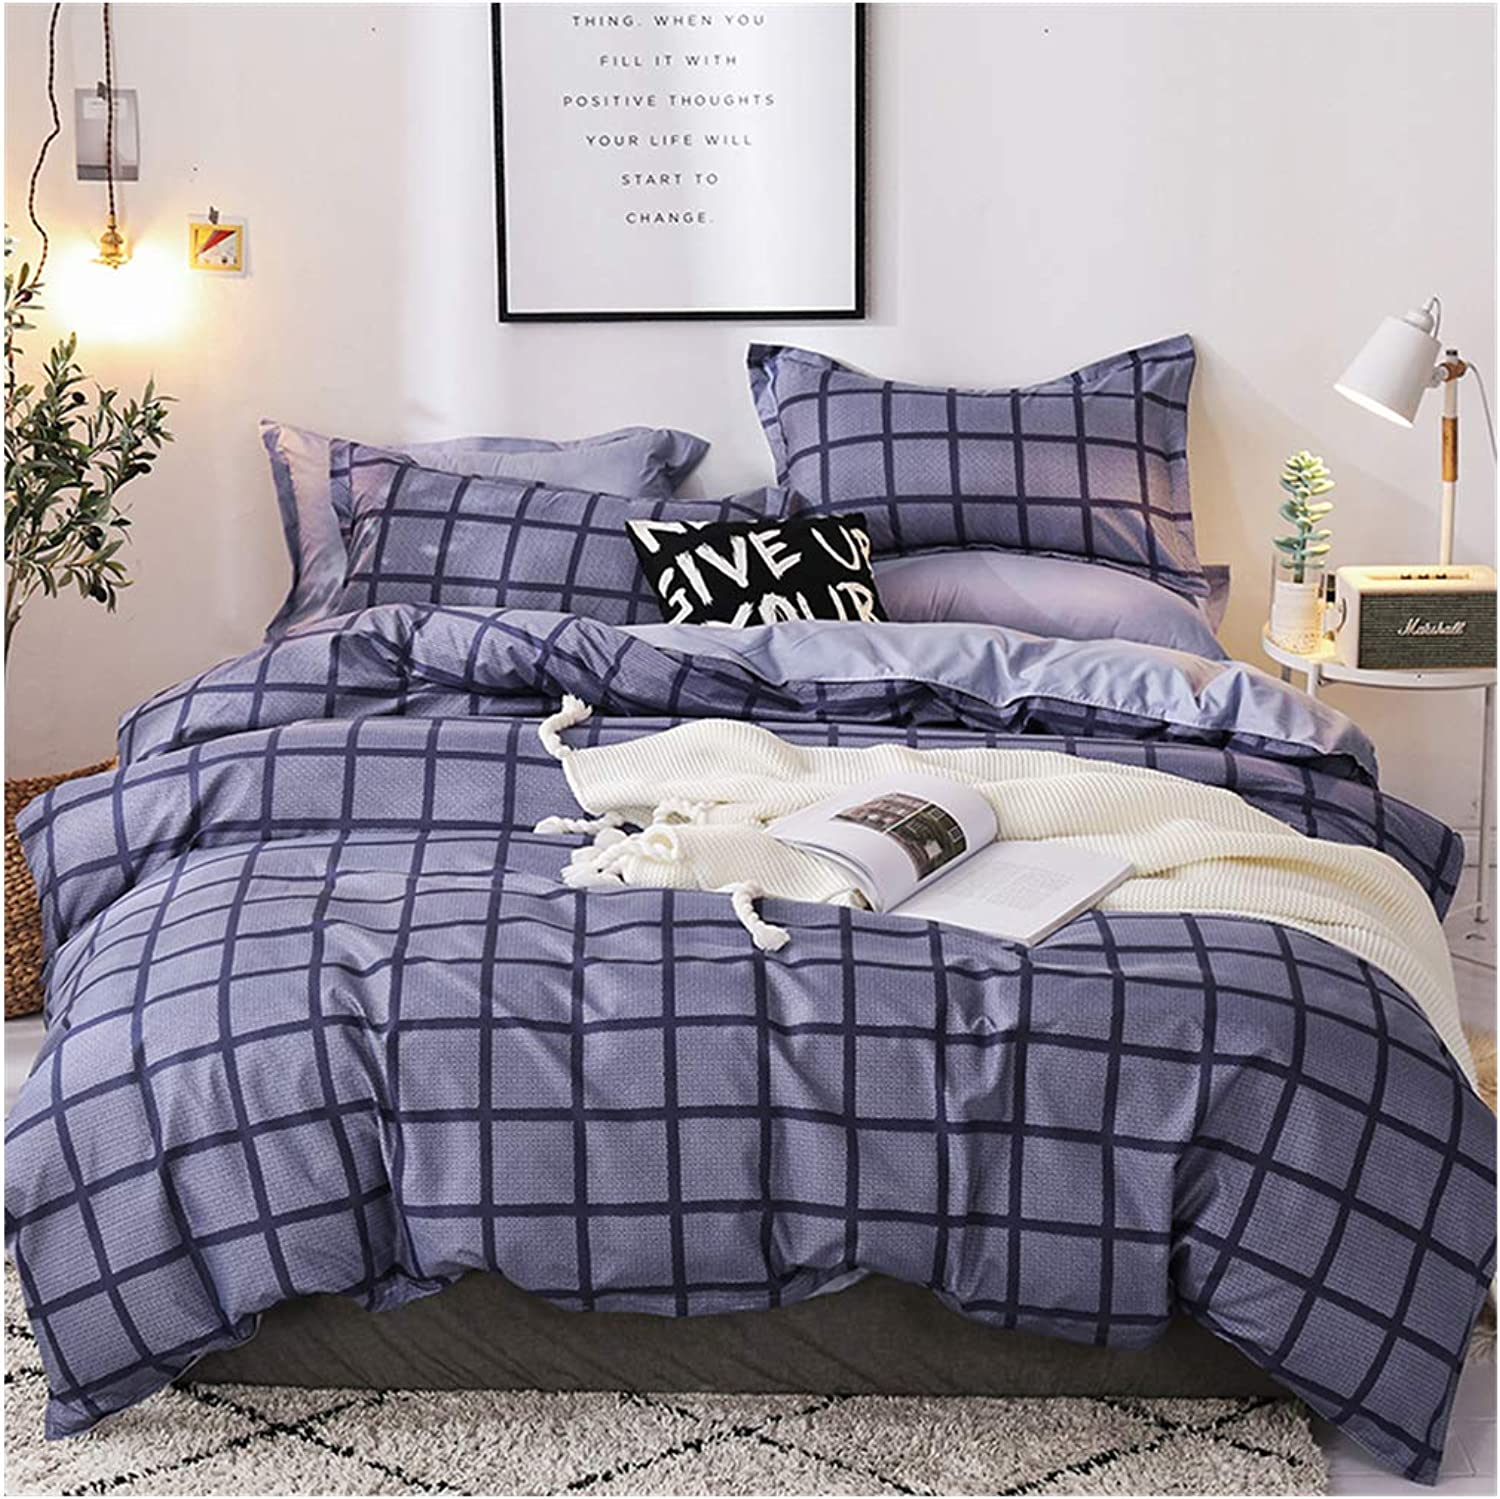 Grid Plaid Bedding Sets Queen for Boys Teens Girls Duvet Cover Sets Checkered Geometric Simple Style 3 Pieces -1 Duvet Cover with Zipper Closure 2 Pillow Sham